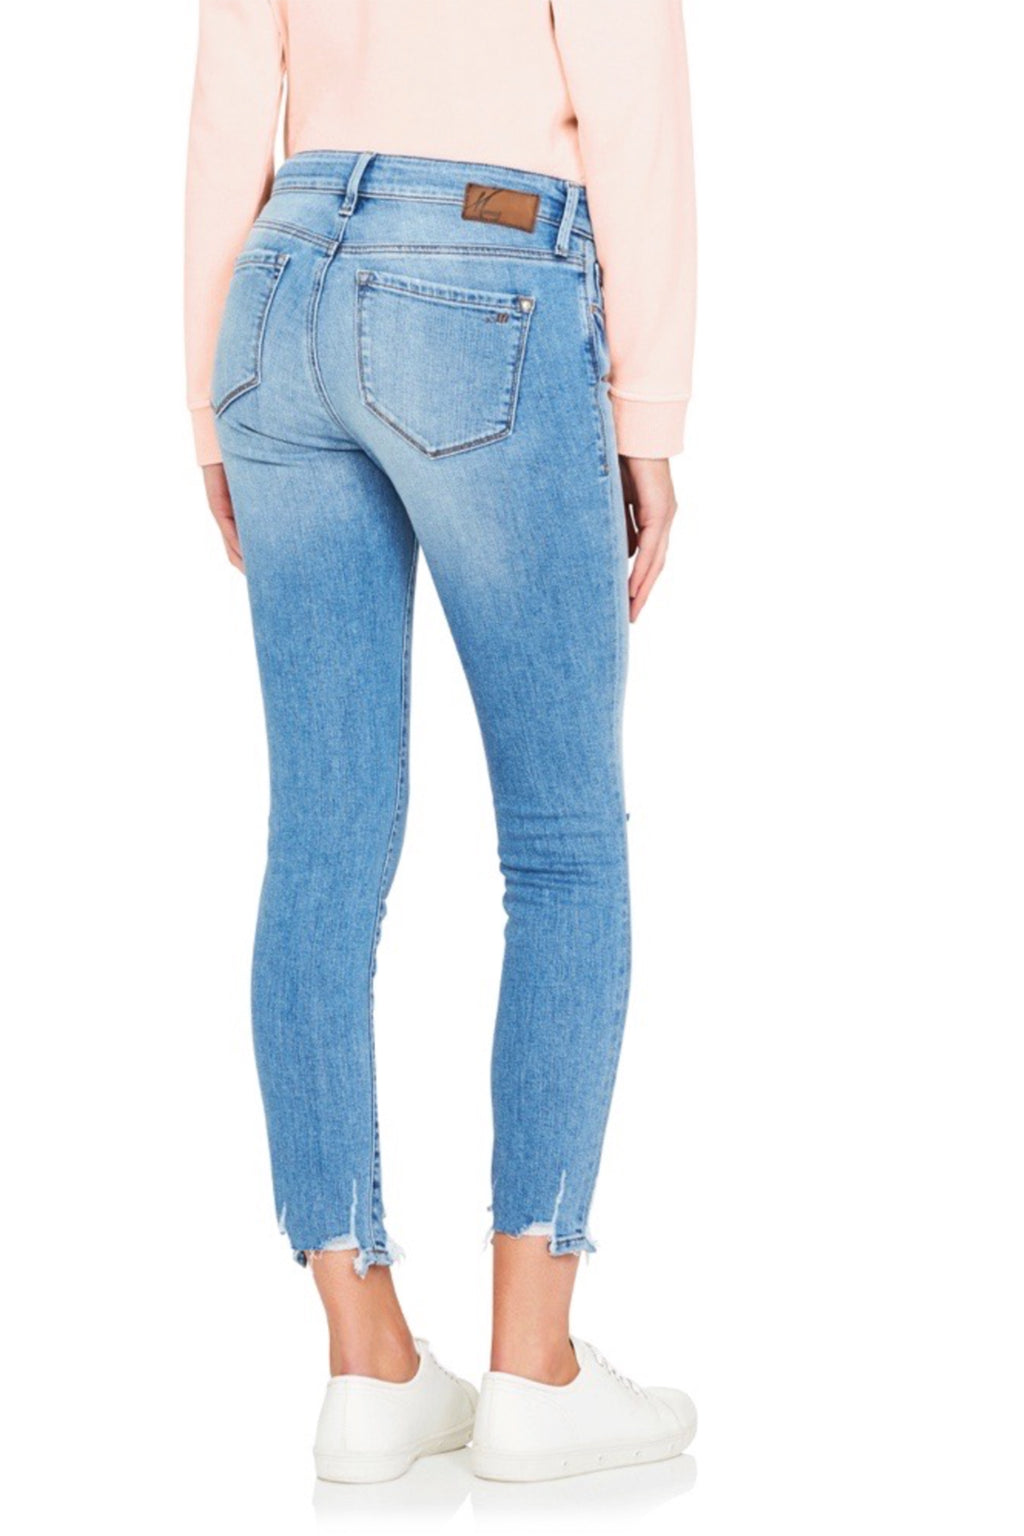 ALISSA Ankle Light Destructed Vintage Jeans